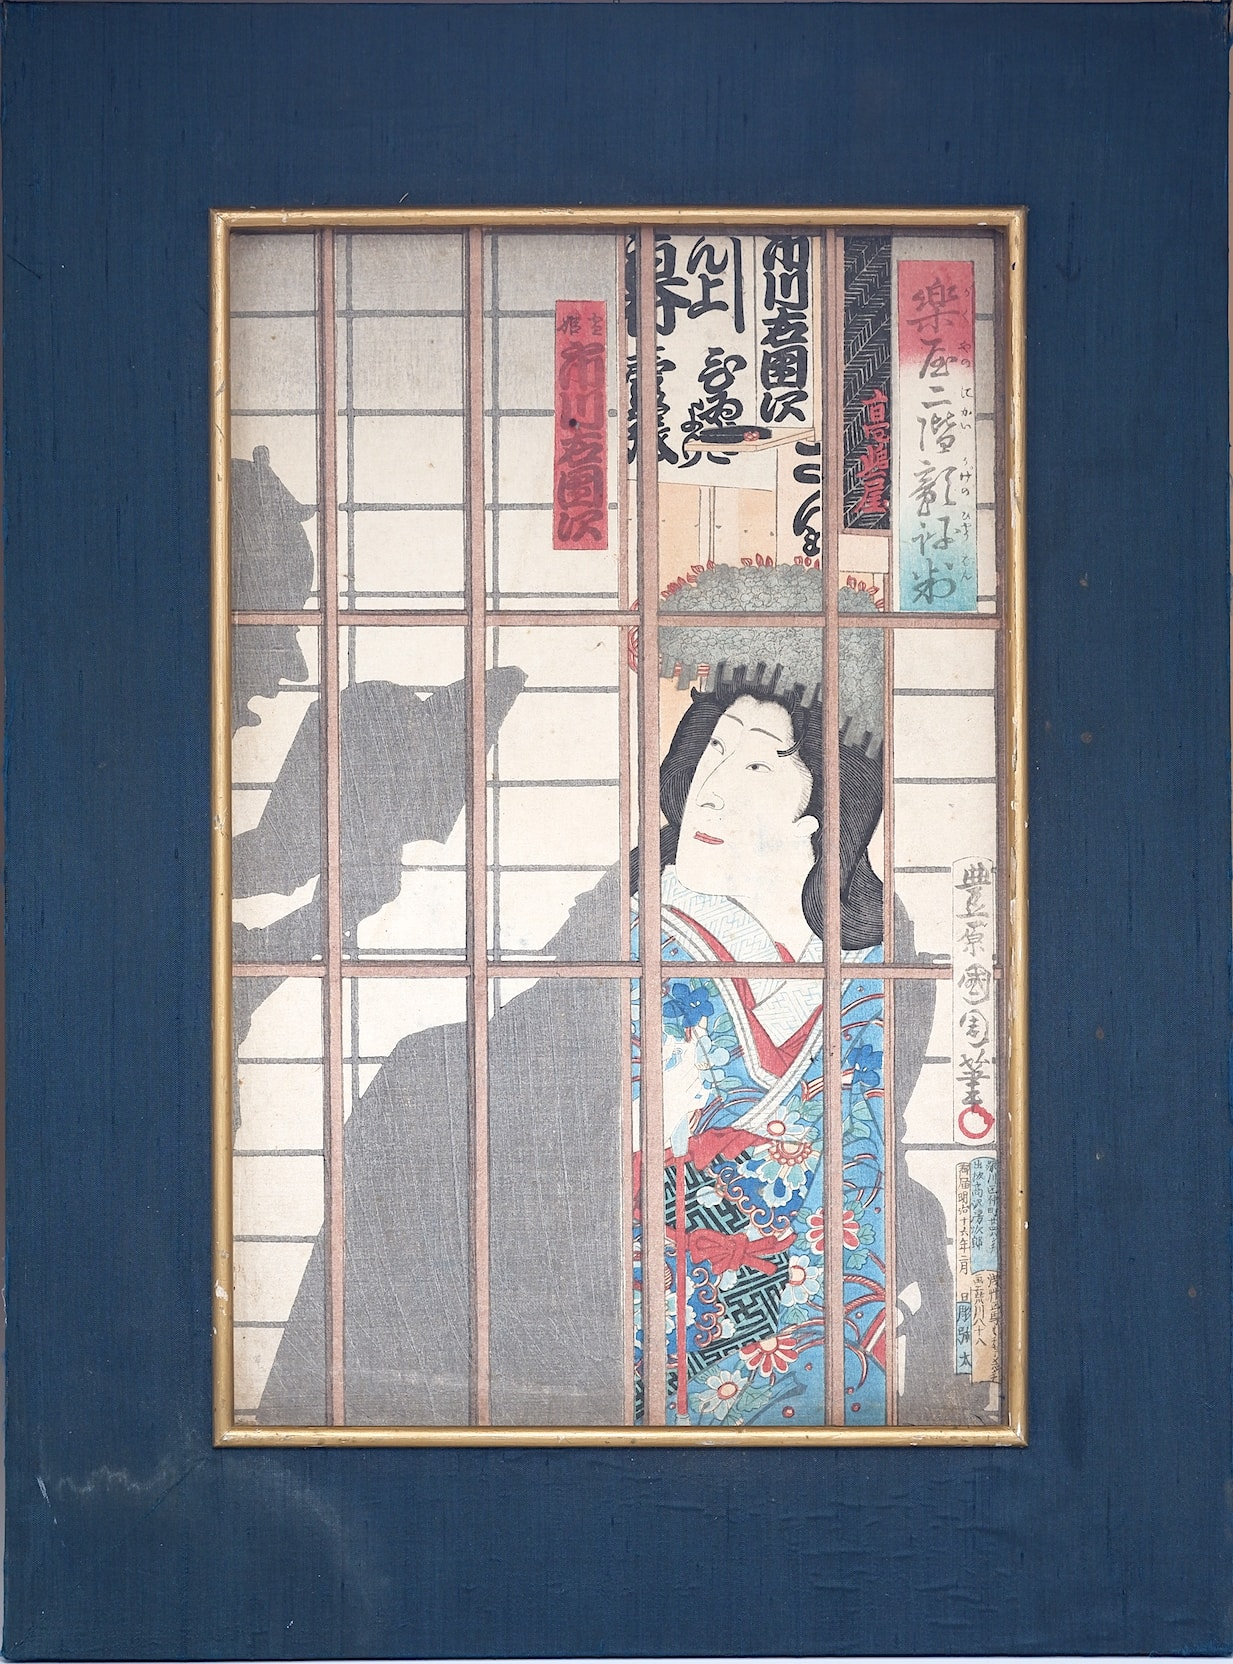 'Toyohara Kunichika (Japanese 1835-1900) Original Woodblock, 19th Century Edition'